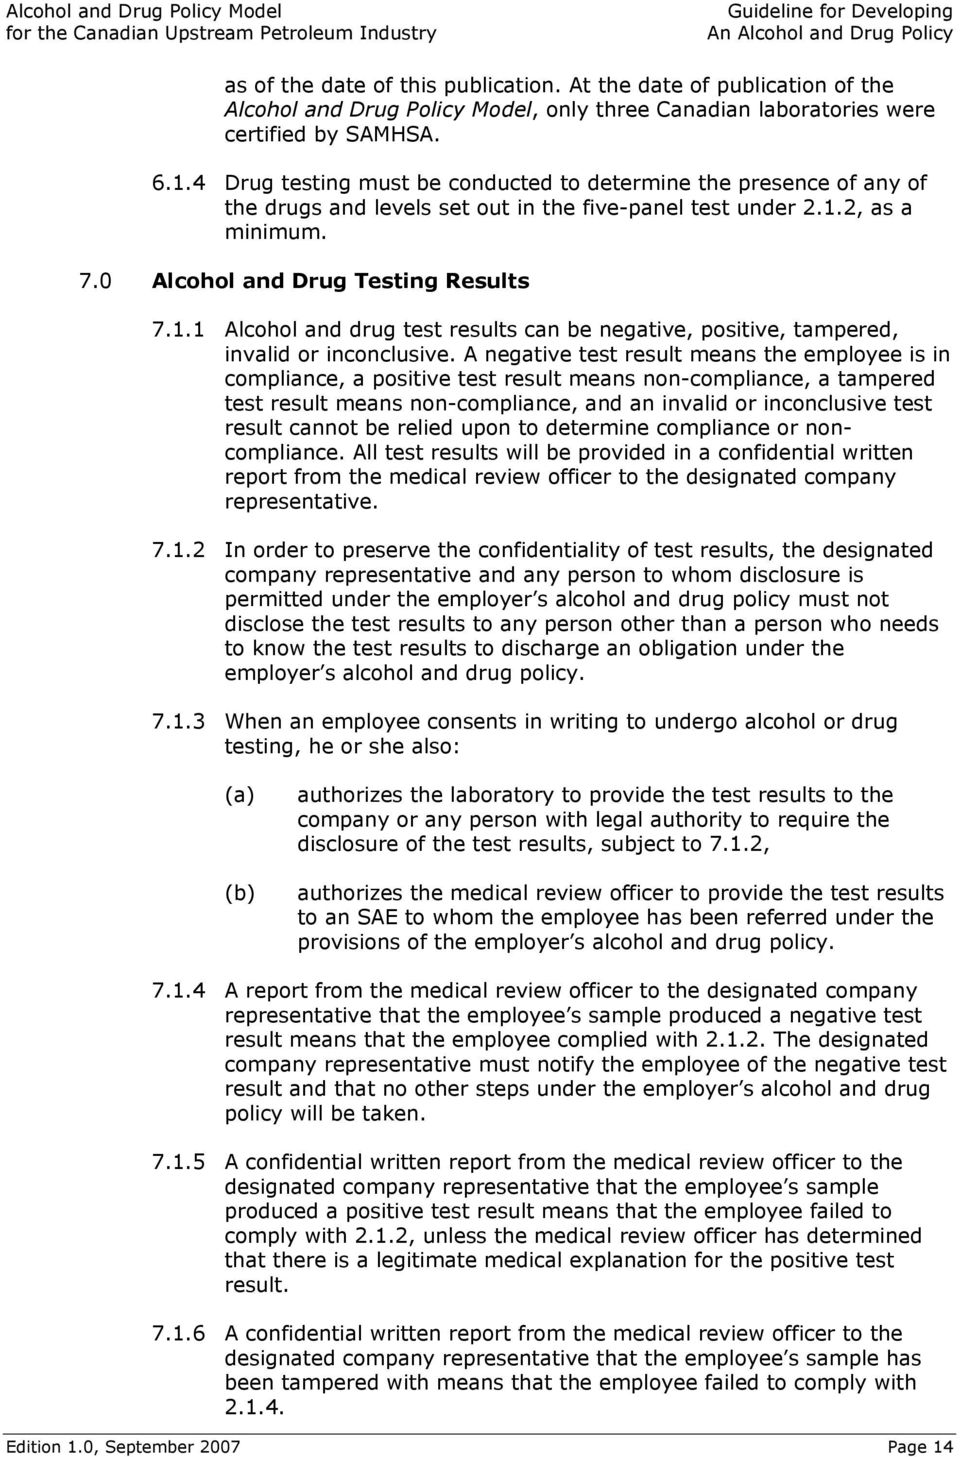 ALCOHOL AND DRUG POLICY MODEL FOR THE CANADIAN UPSTREAM